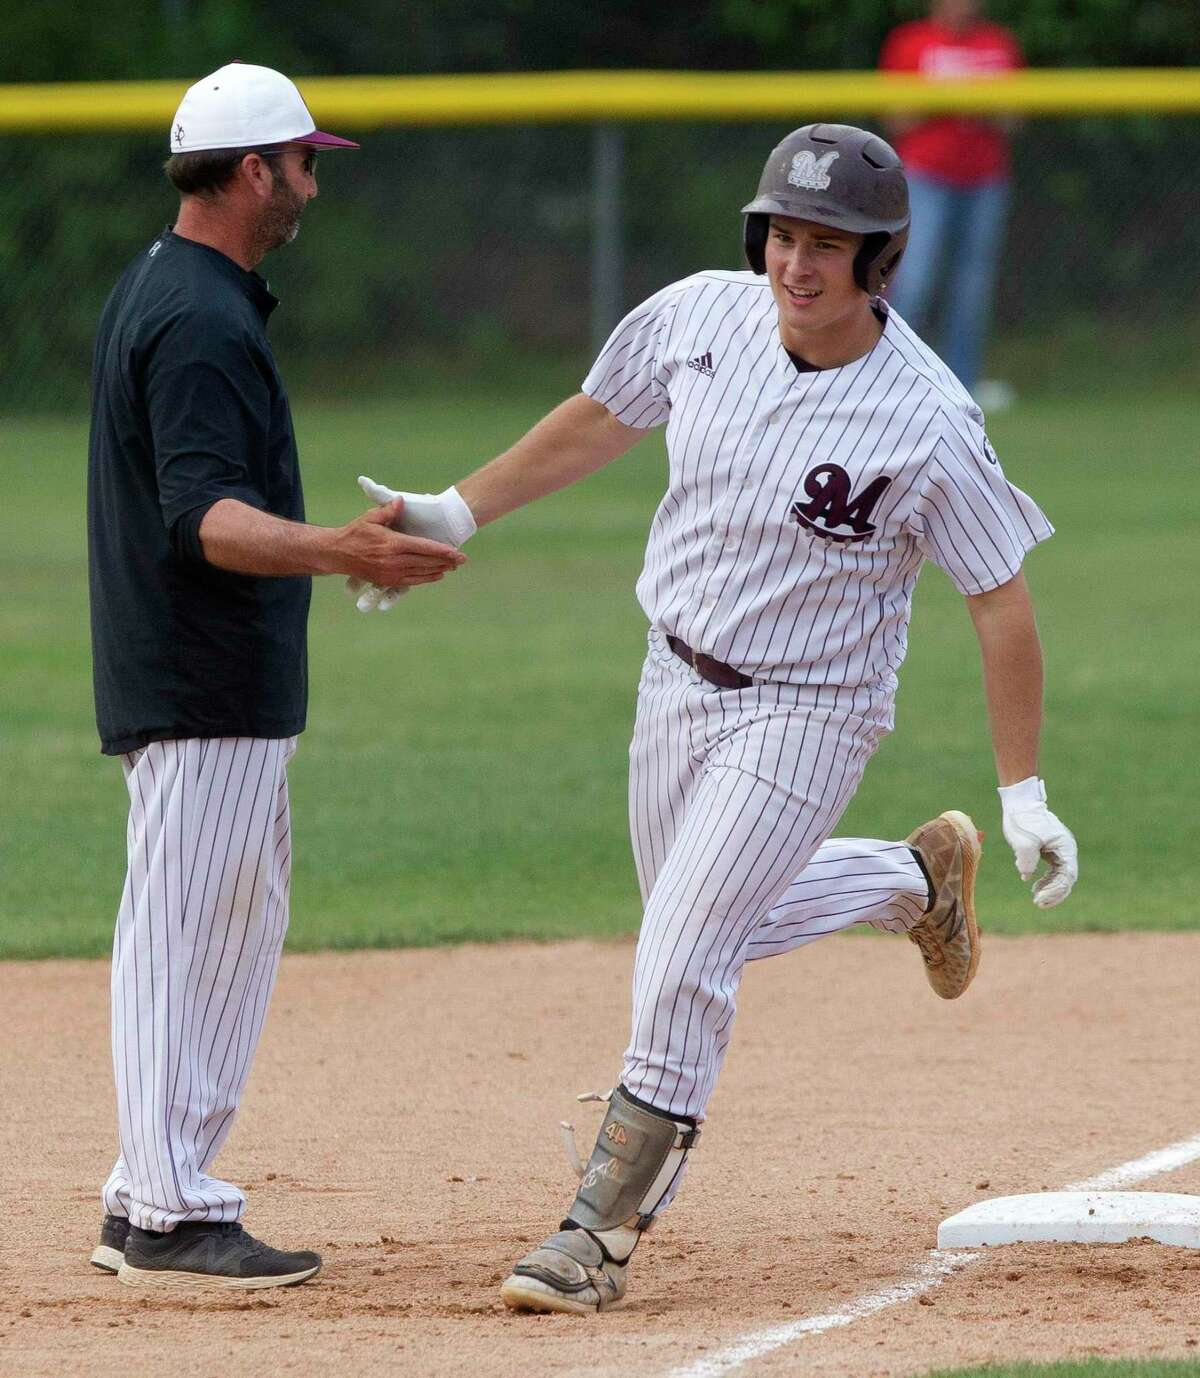 Cole Ketzner #19 of Magnolia reacts after hitting a three-run home run off Tomball starting pitcher Mason Marriott in the second inning of Game 2 during a Region III-5A bi-district high school baseball playoff series at Tomball High School, Thursday, May 2, 2019, in Tomball.